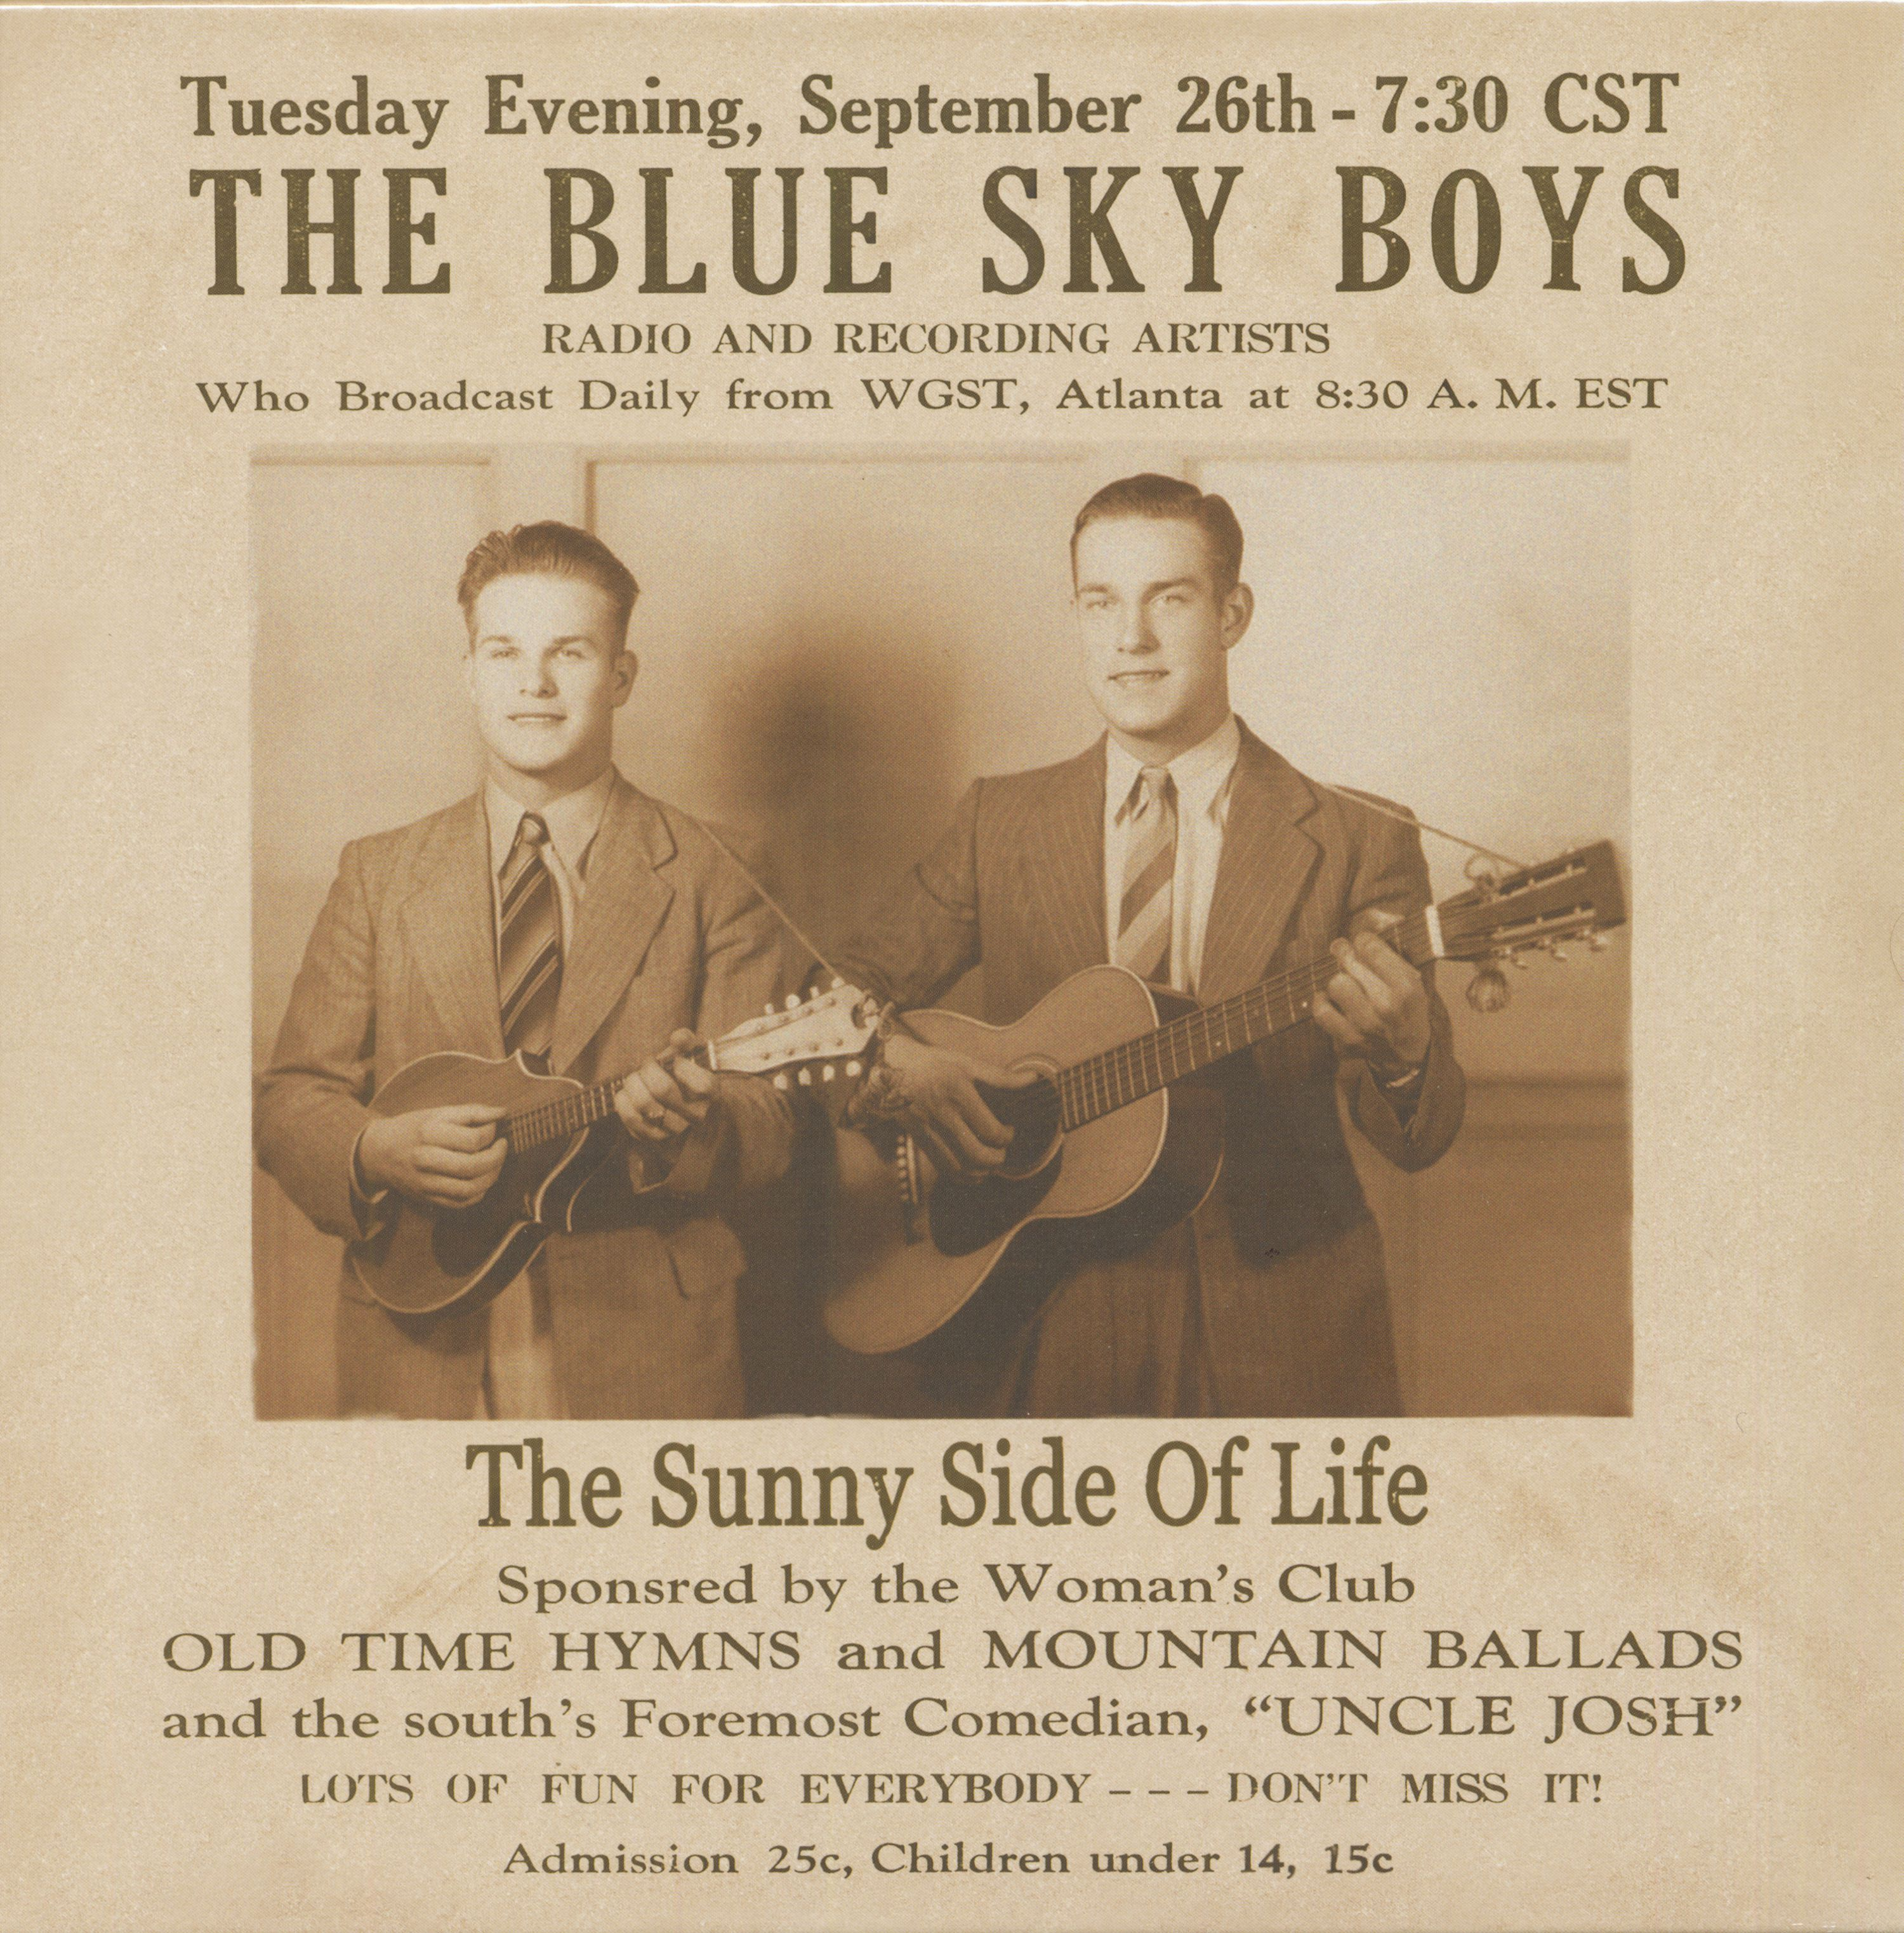 A concert poster for a Blue Sky Boys performance